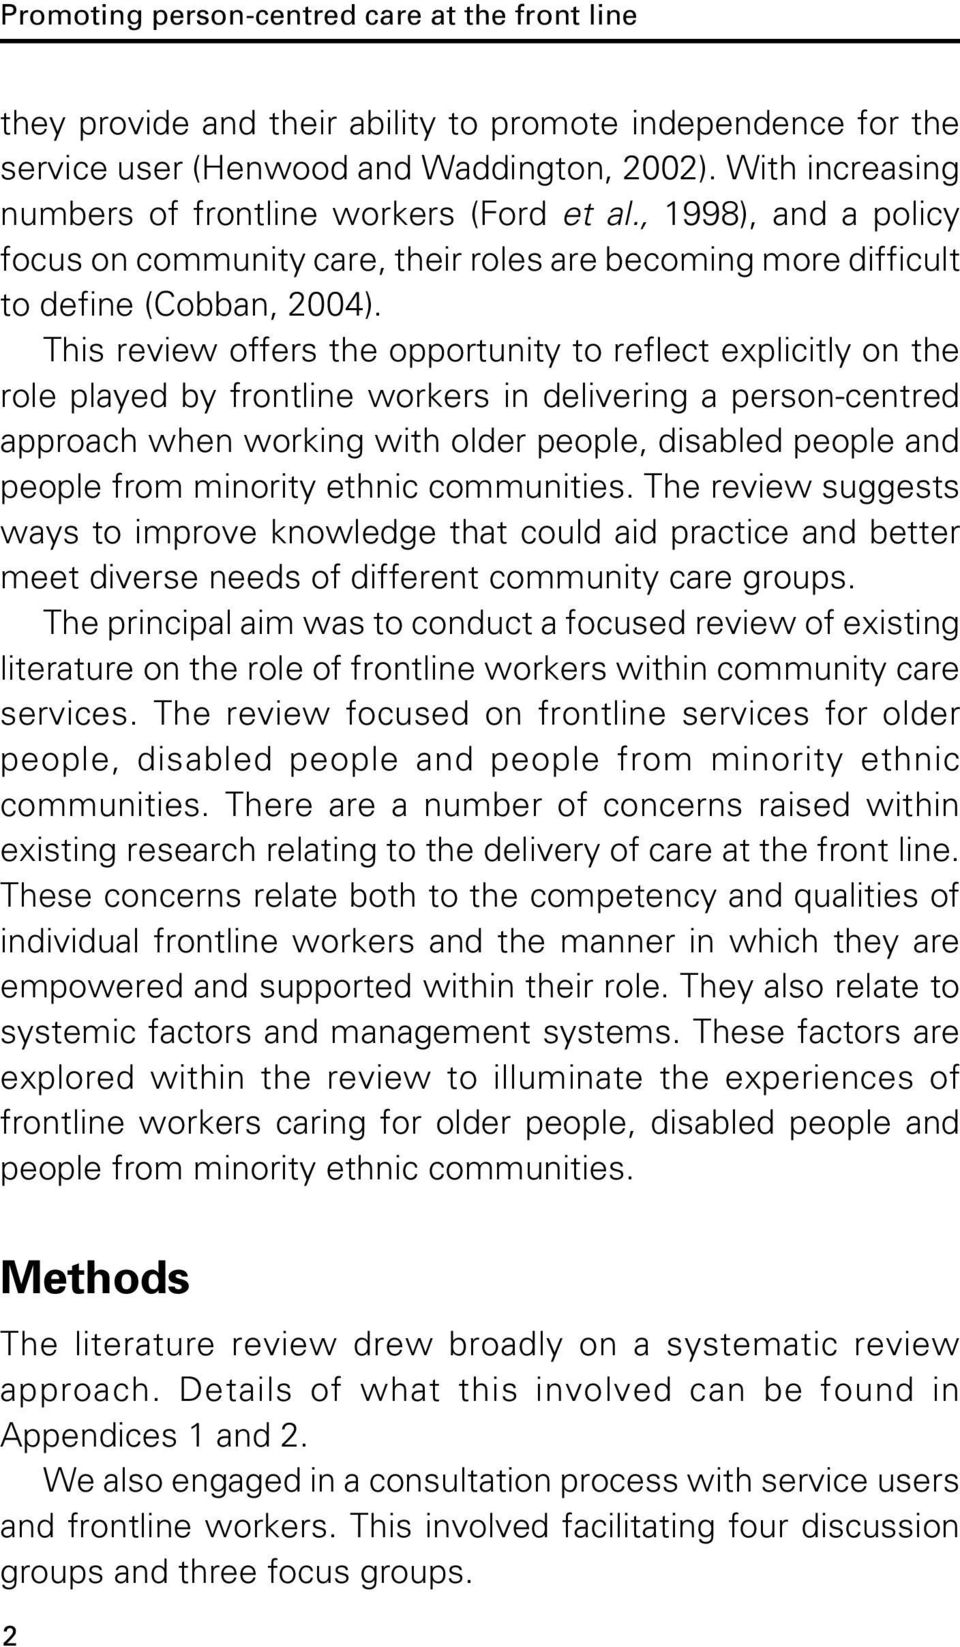 This review offers the opportunity to reflect explicitly on the role played by frontline workers in delivering a person-centred approach when working with older people, disabled people and people